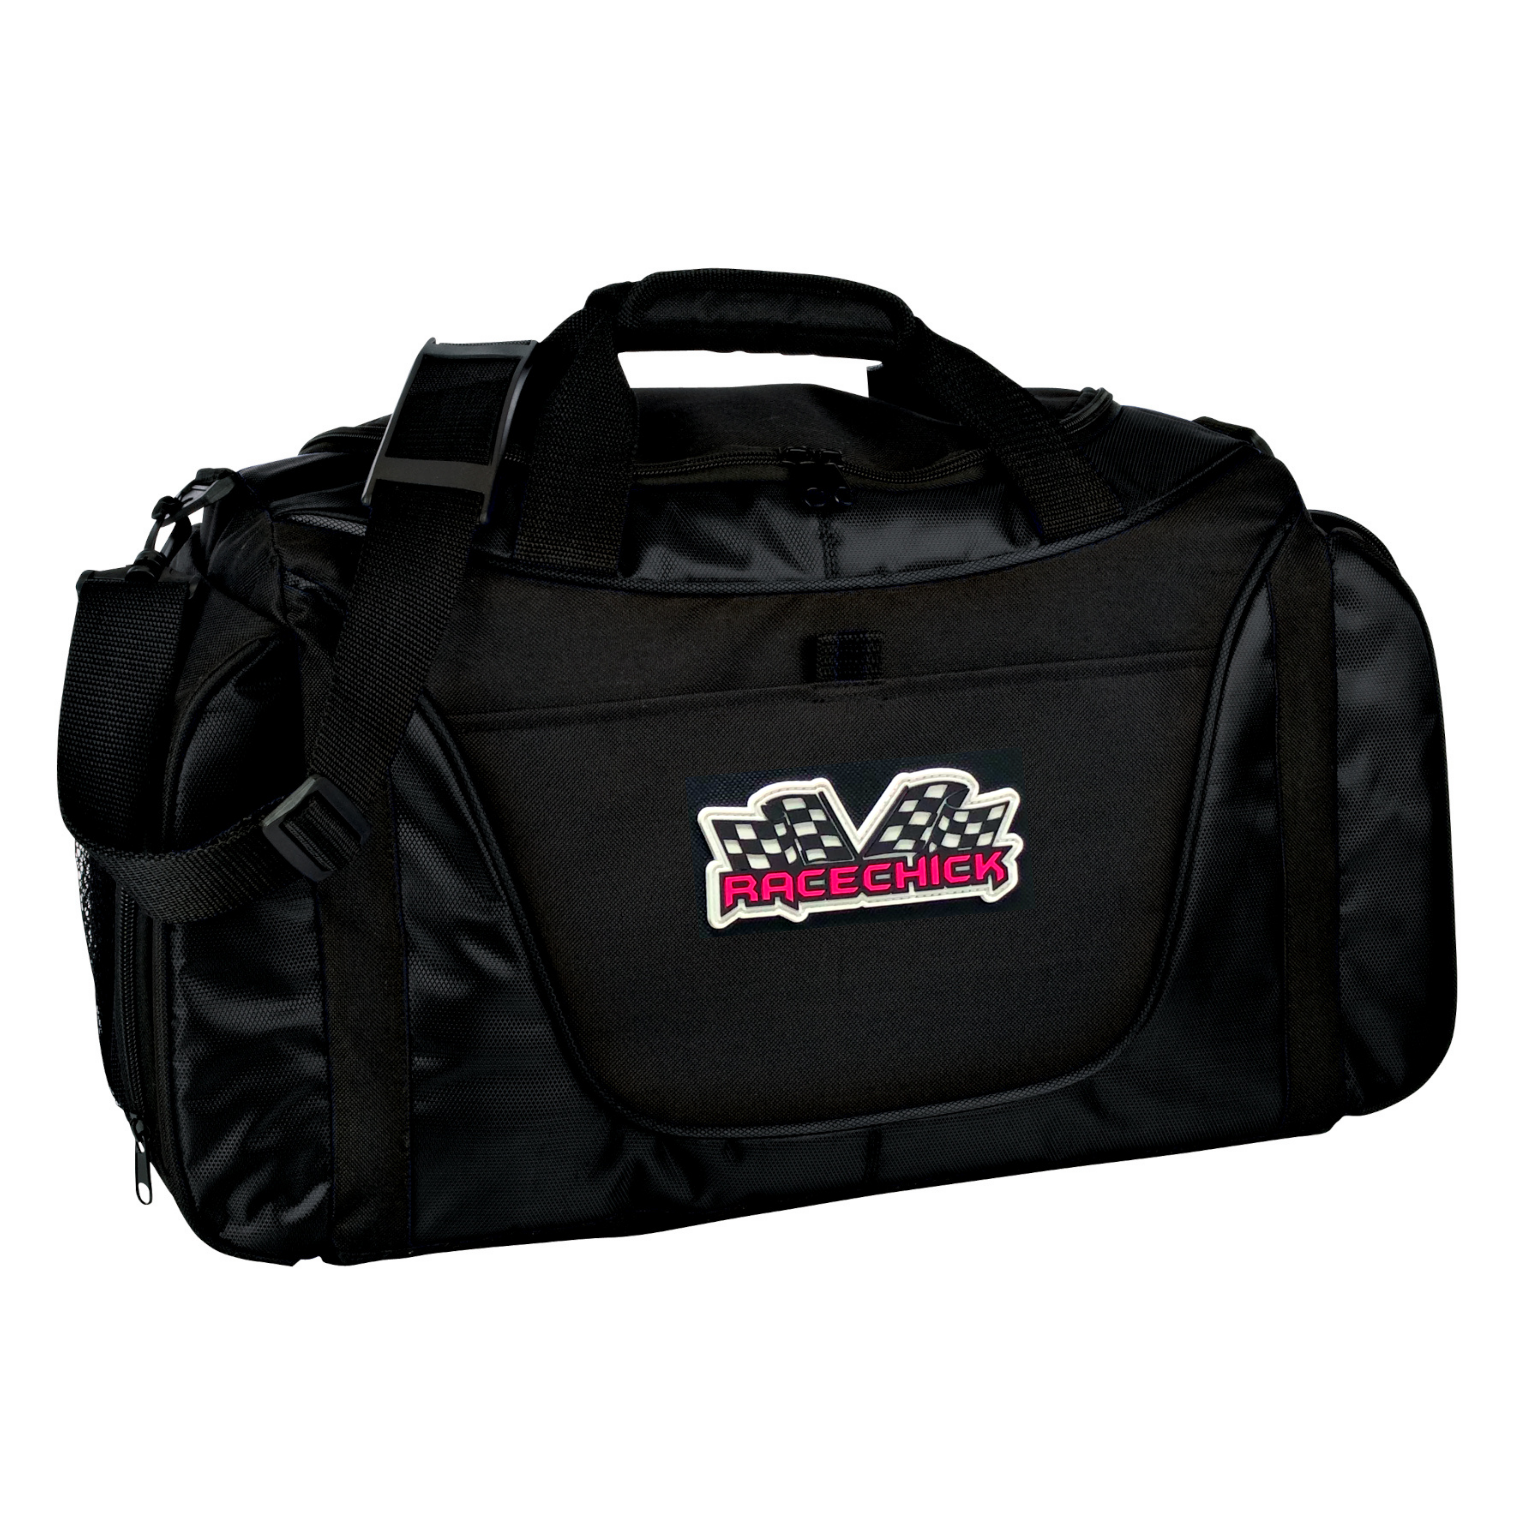 Racechick Gear Bag